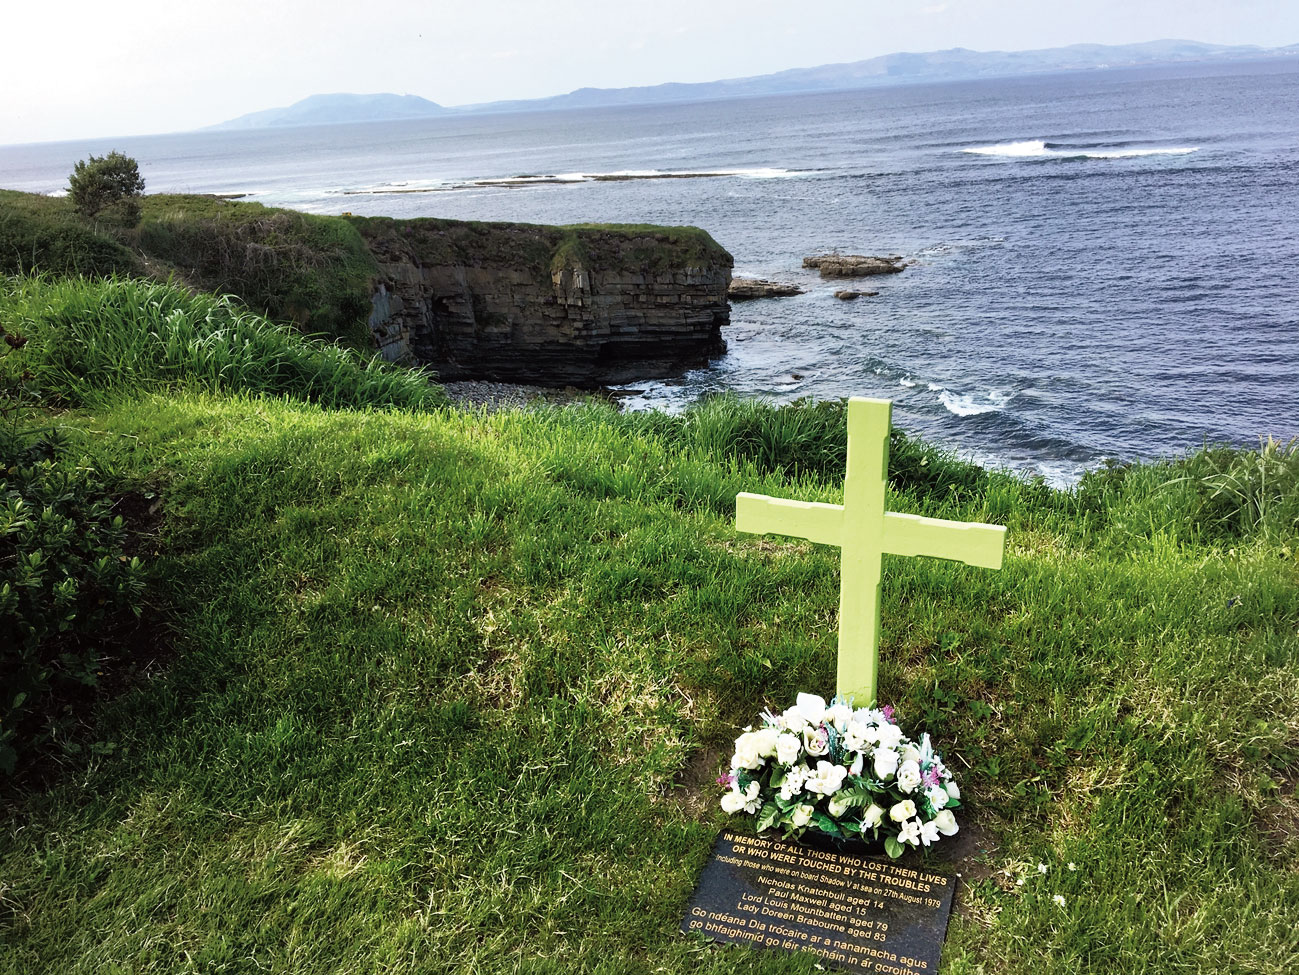 The Mullaghmore Memorial Cross commemorating the death of Mountbatten, together with family and friends on board the Shadow V on 27 August 1979.